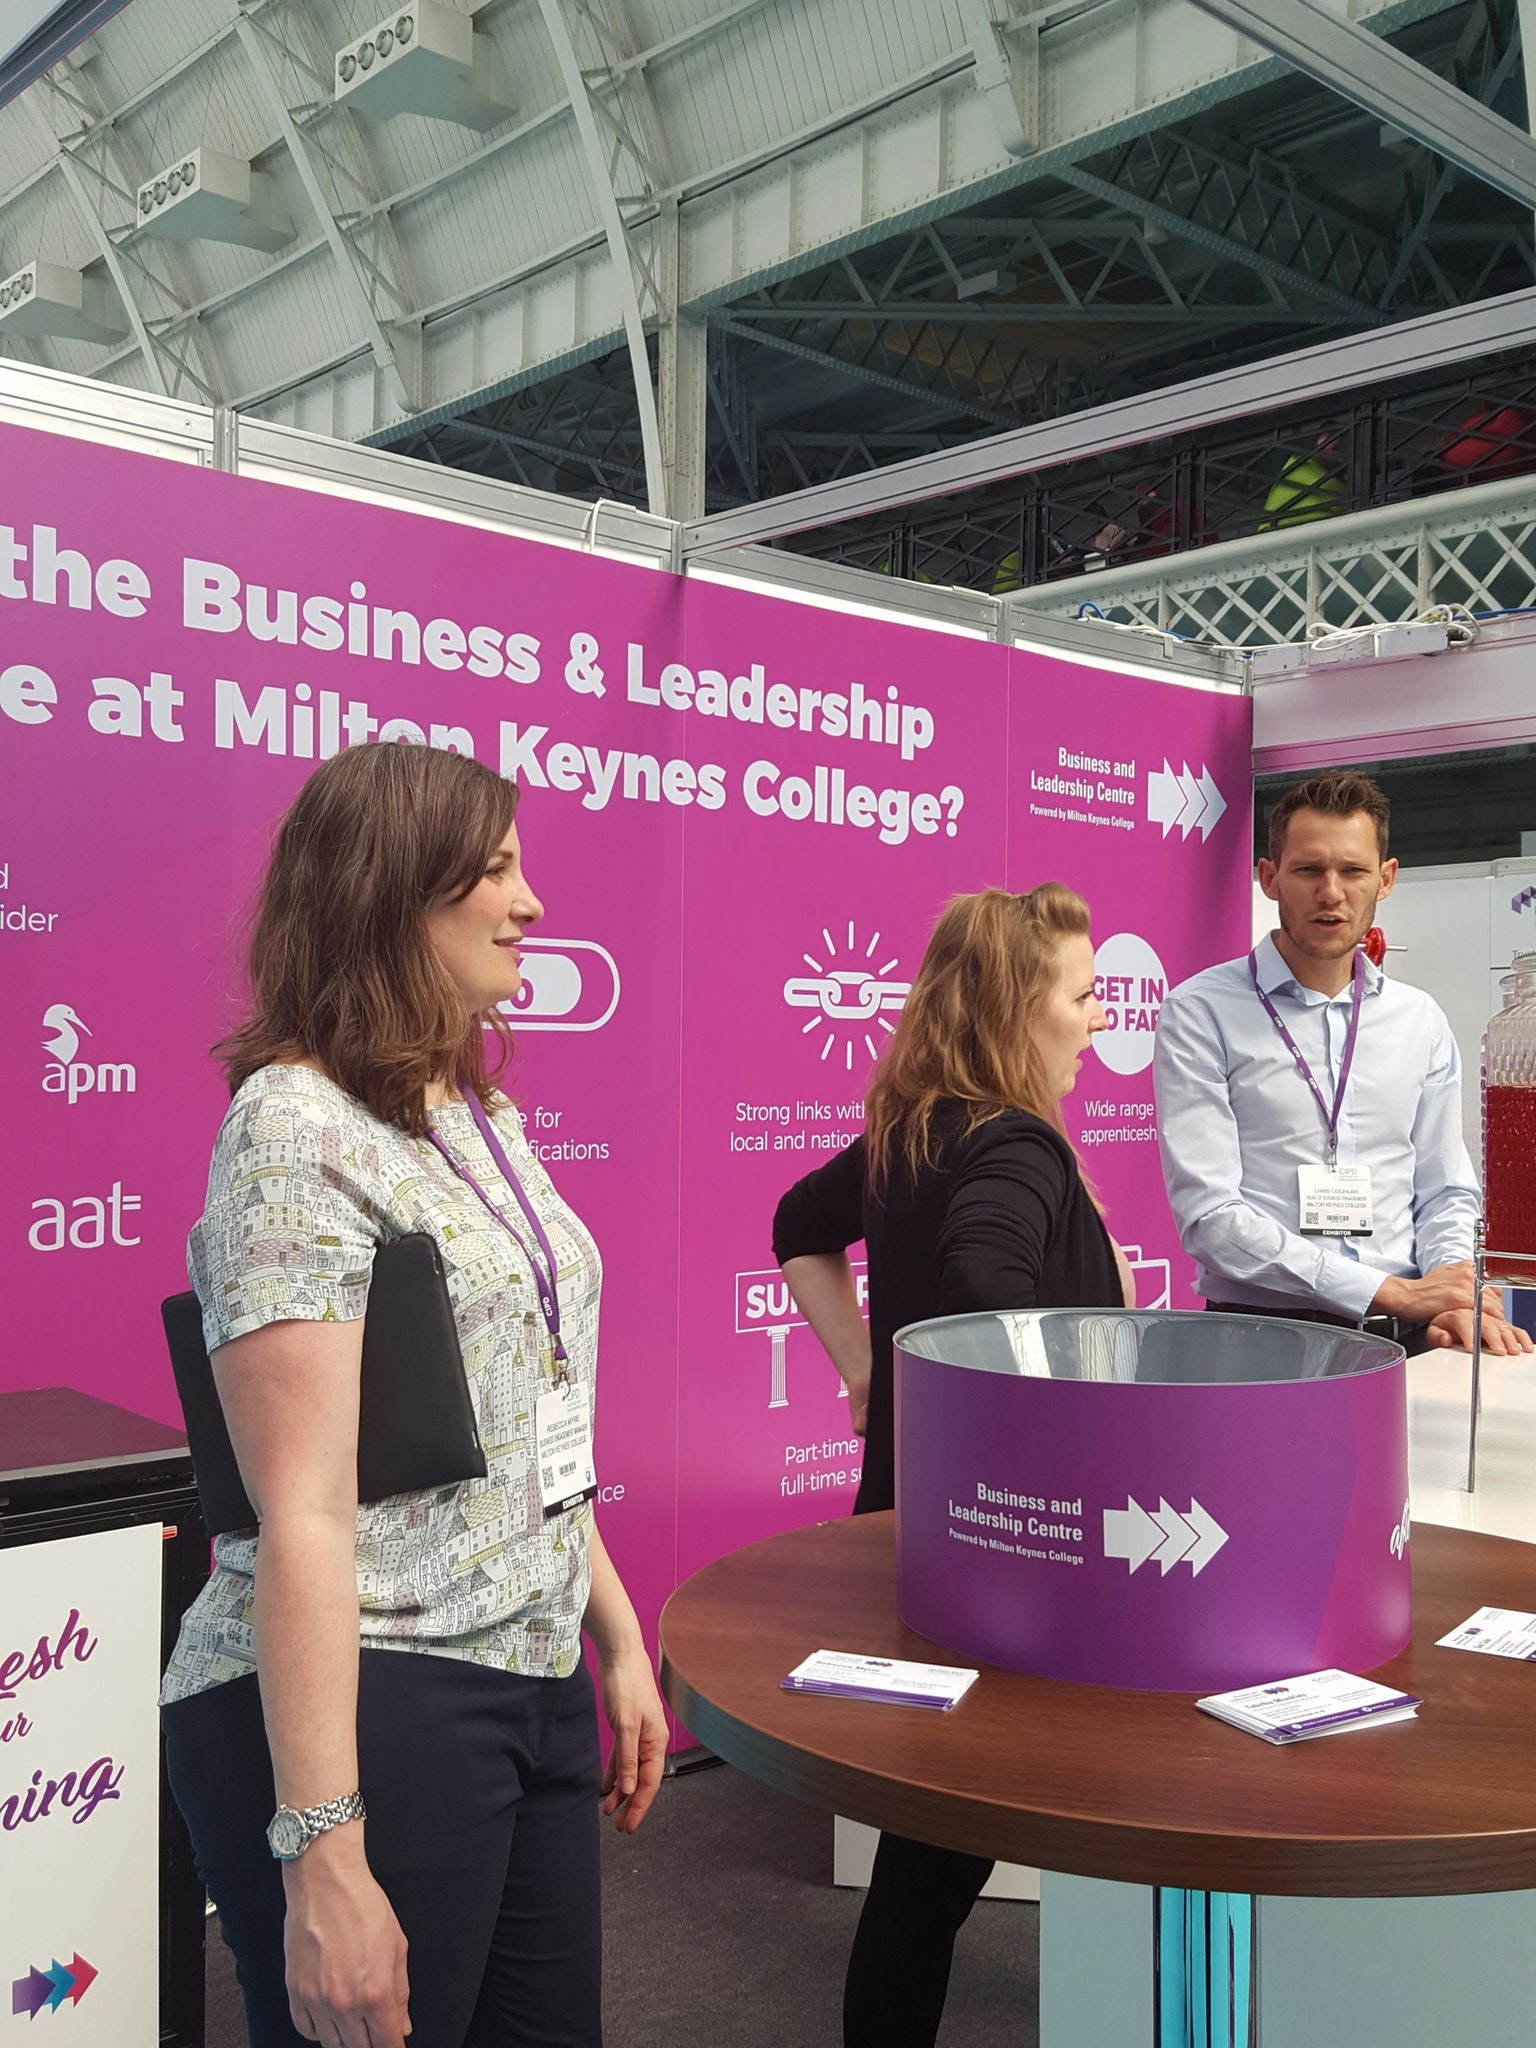 @MKCollege come speak to some lovely knowledable folk who know about apprenticeship and juice... #cipdldshow https://t.co/nxHkUndS5v